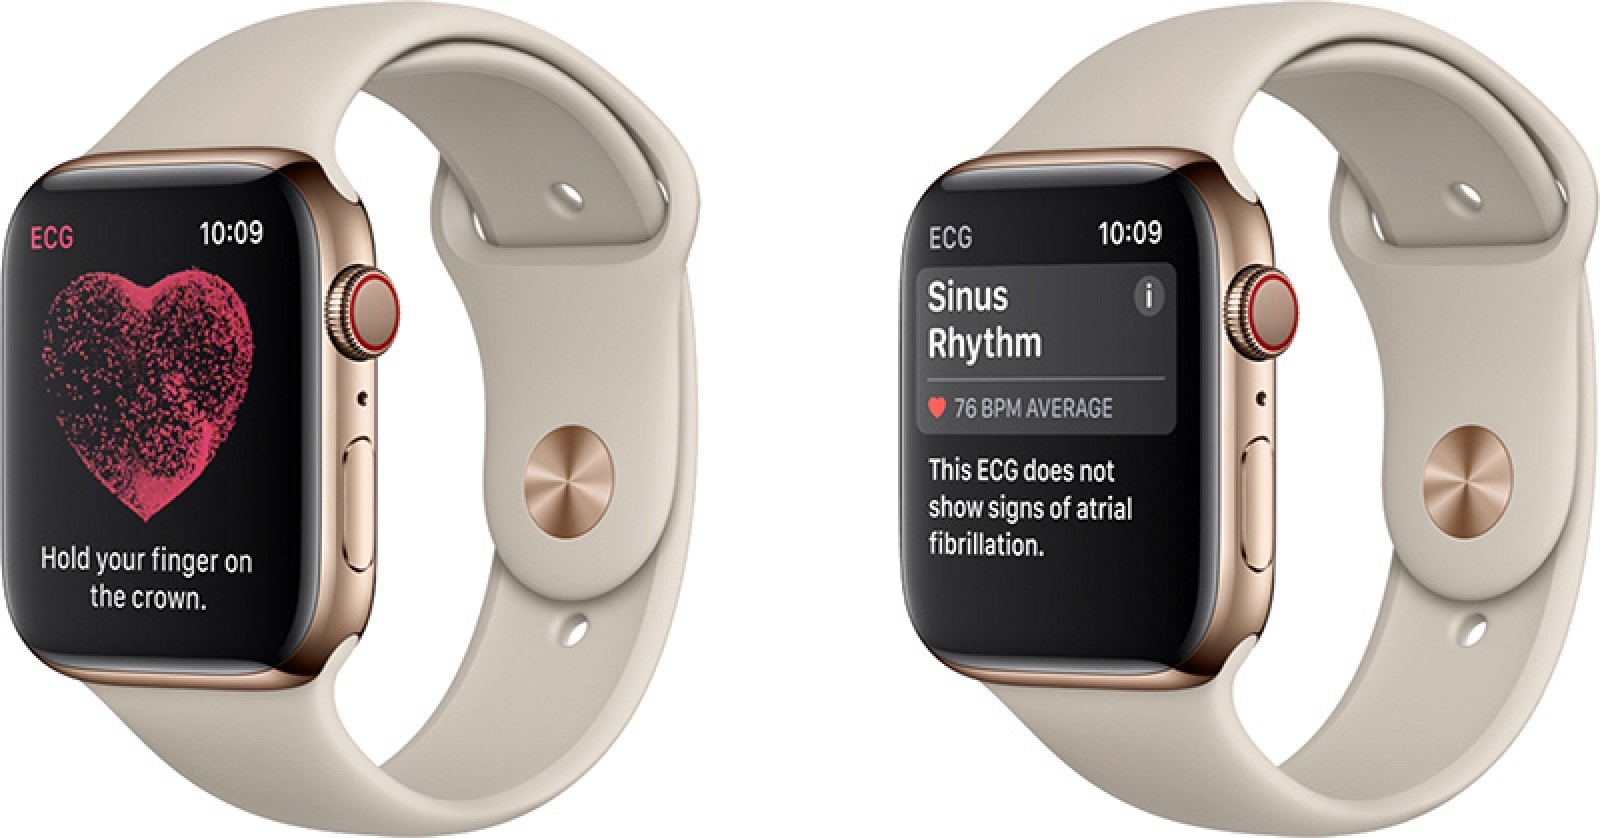 1bde5fd489b Electrocardiogram Functionality in New Apple Watch Series 4 Models Limited  to US, Coming Later This Year